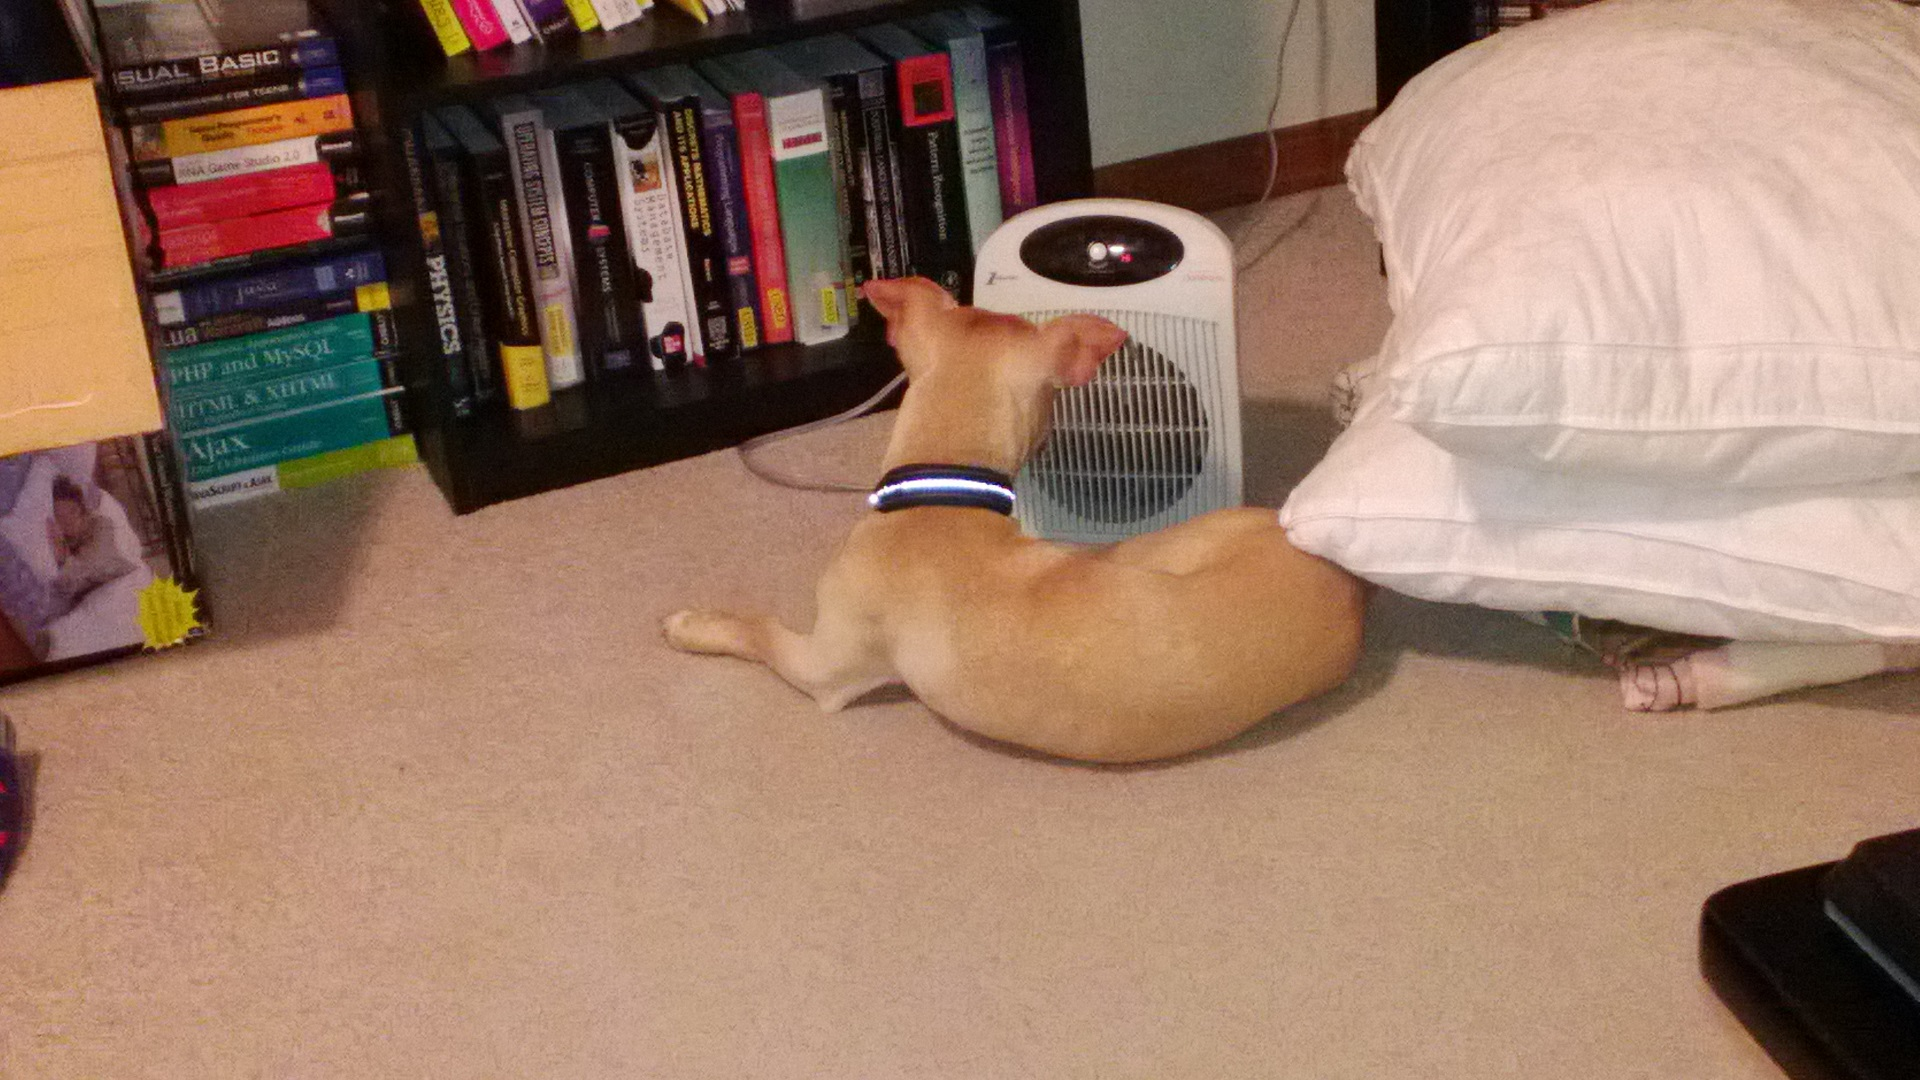 Sheldon and the heater